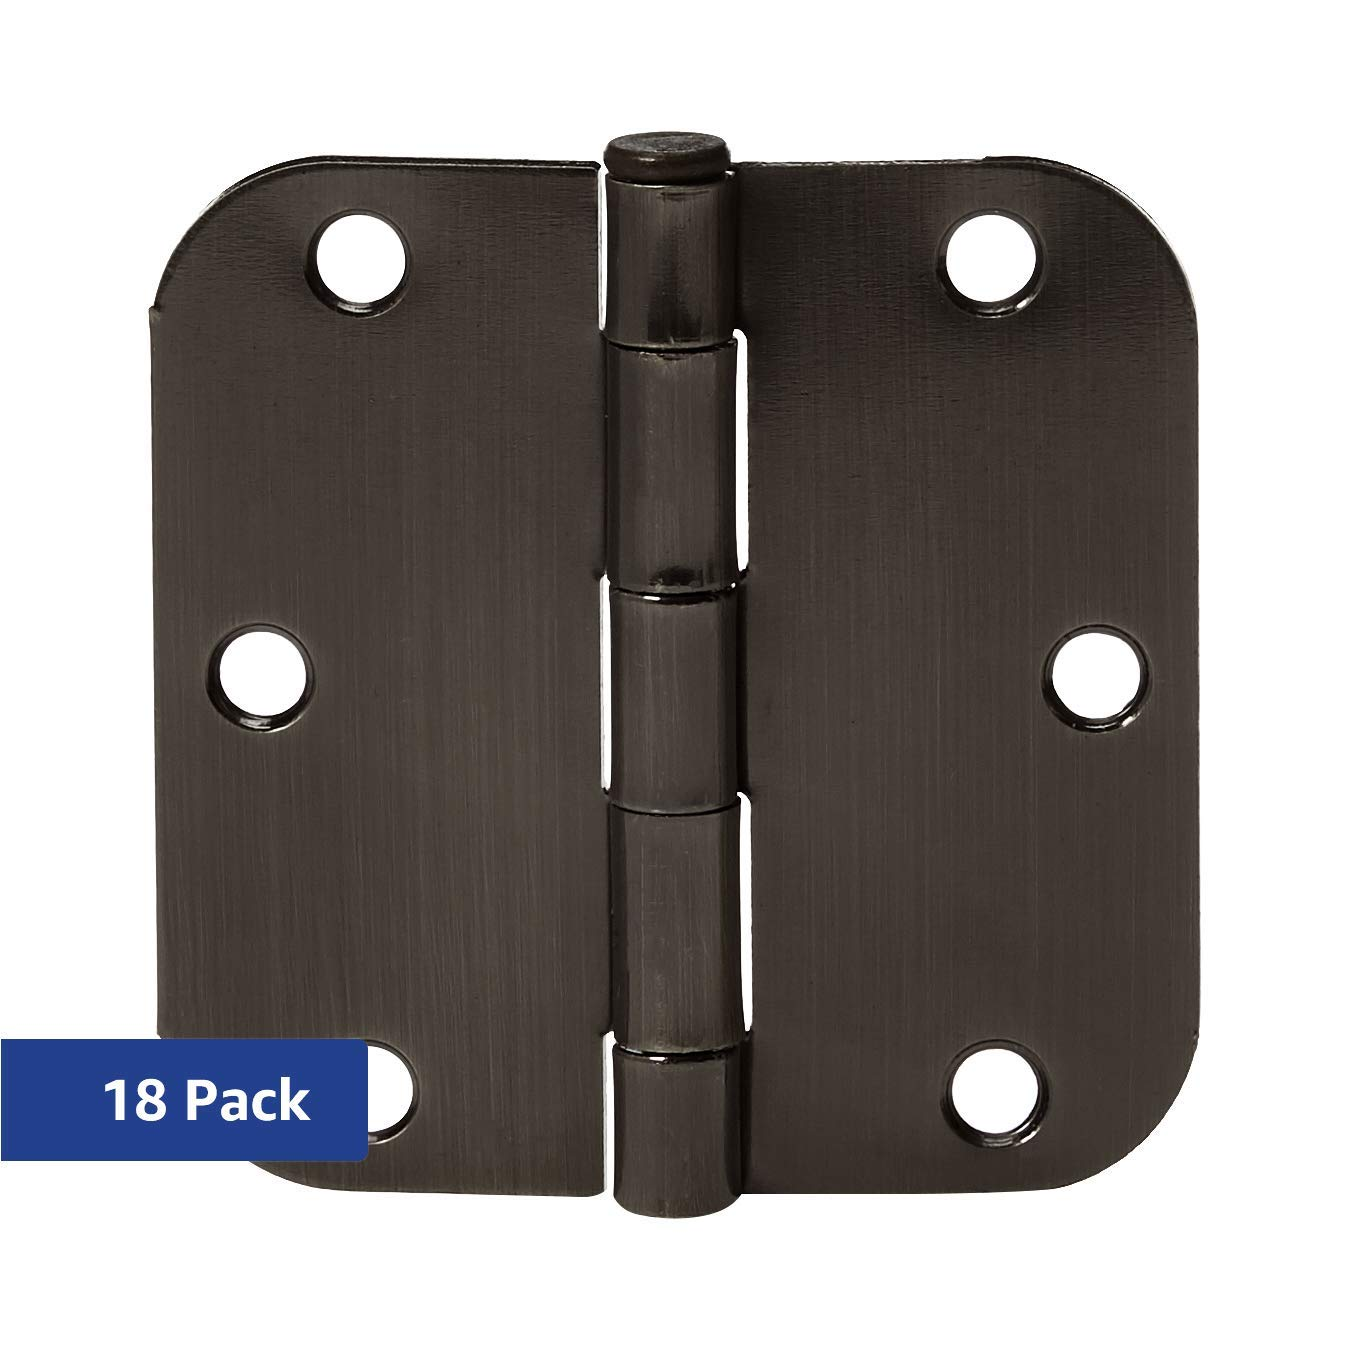 AmazonBasics Rounded 3.5 Inch x 3.5 Inch Door Hinges, 18 Pack, Oil Rubbed Bronze